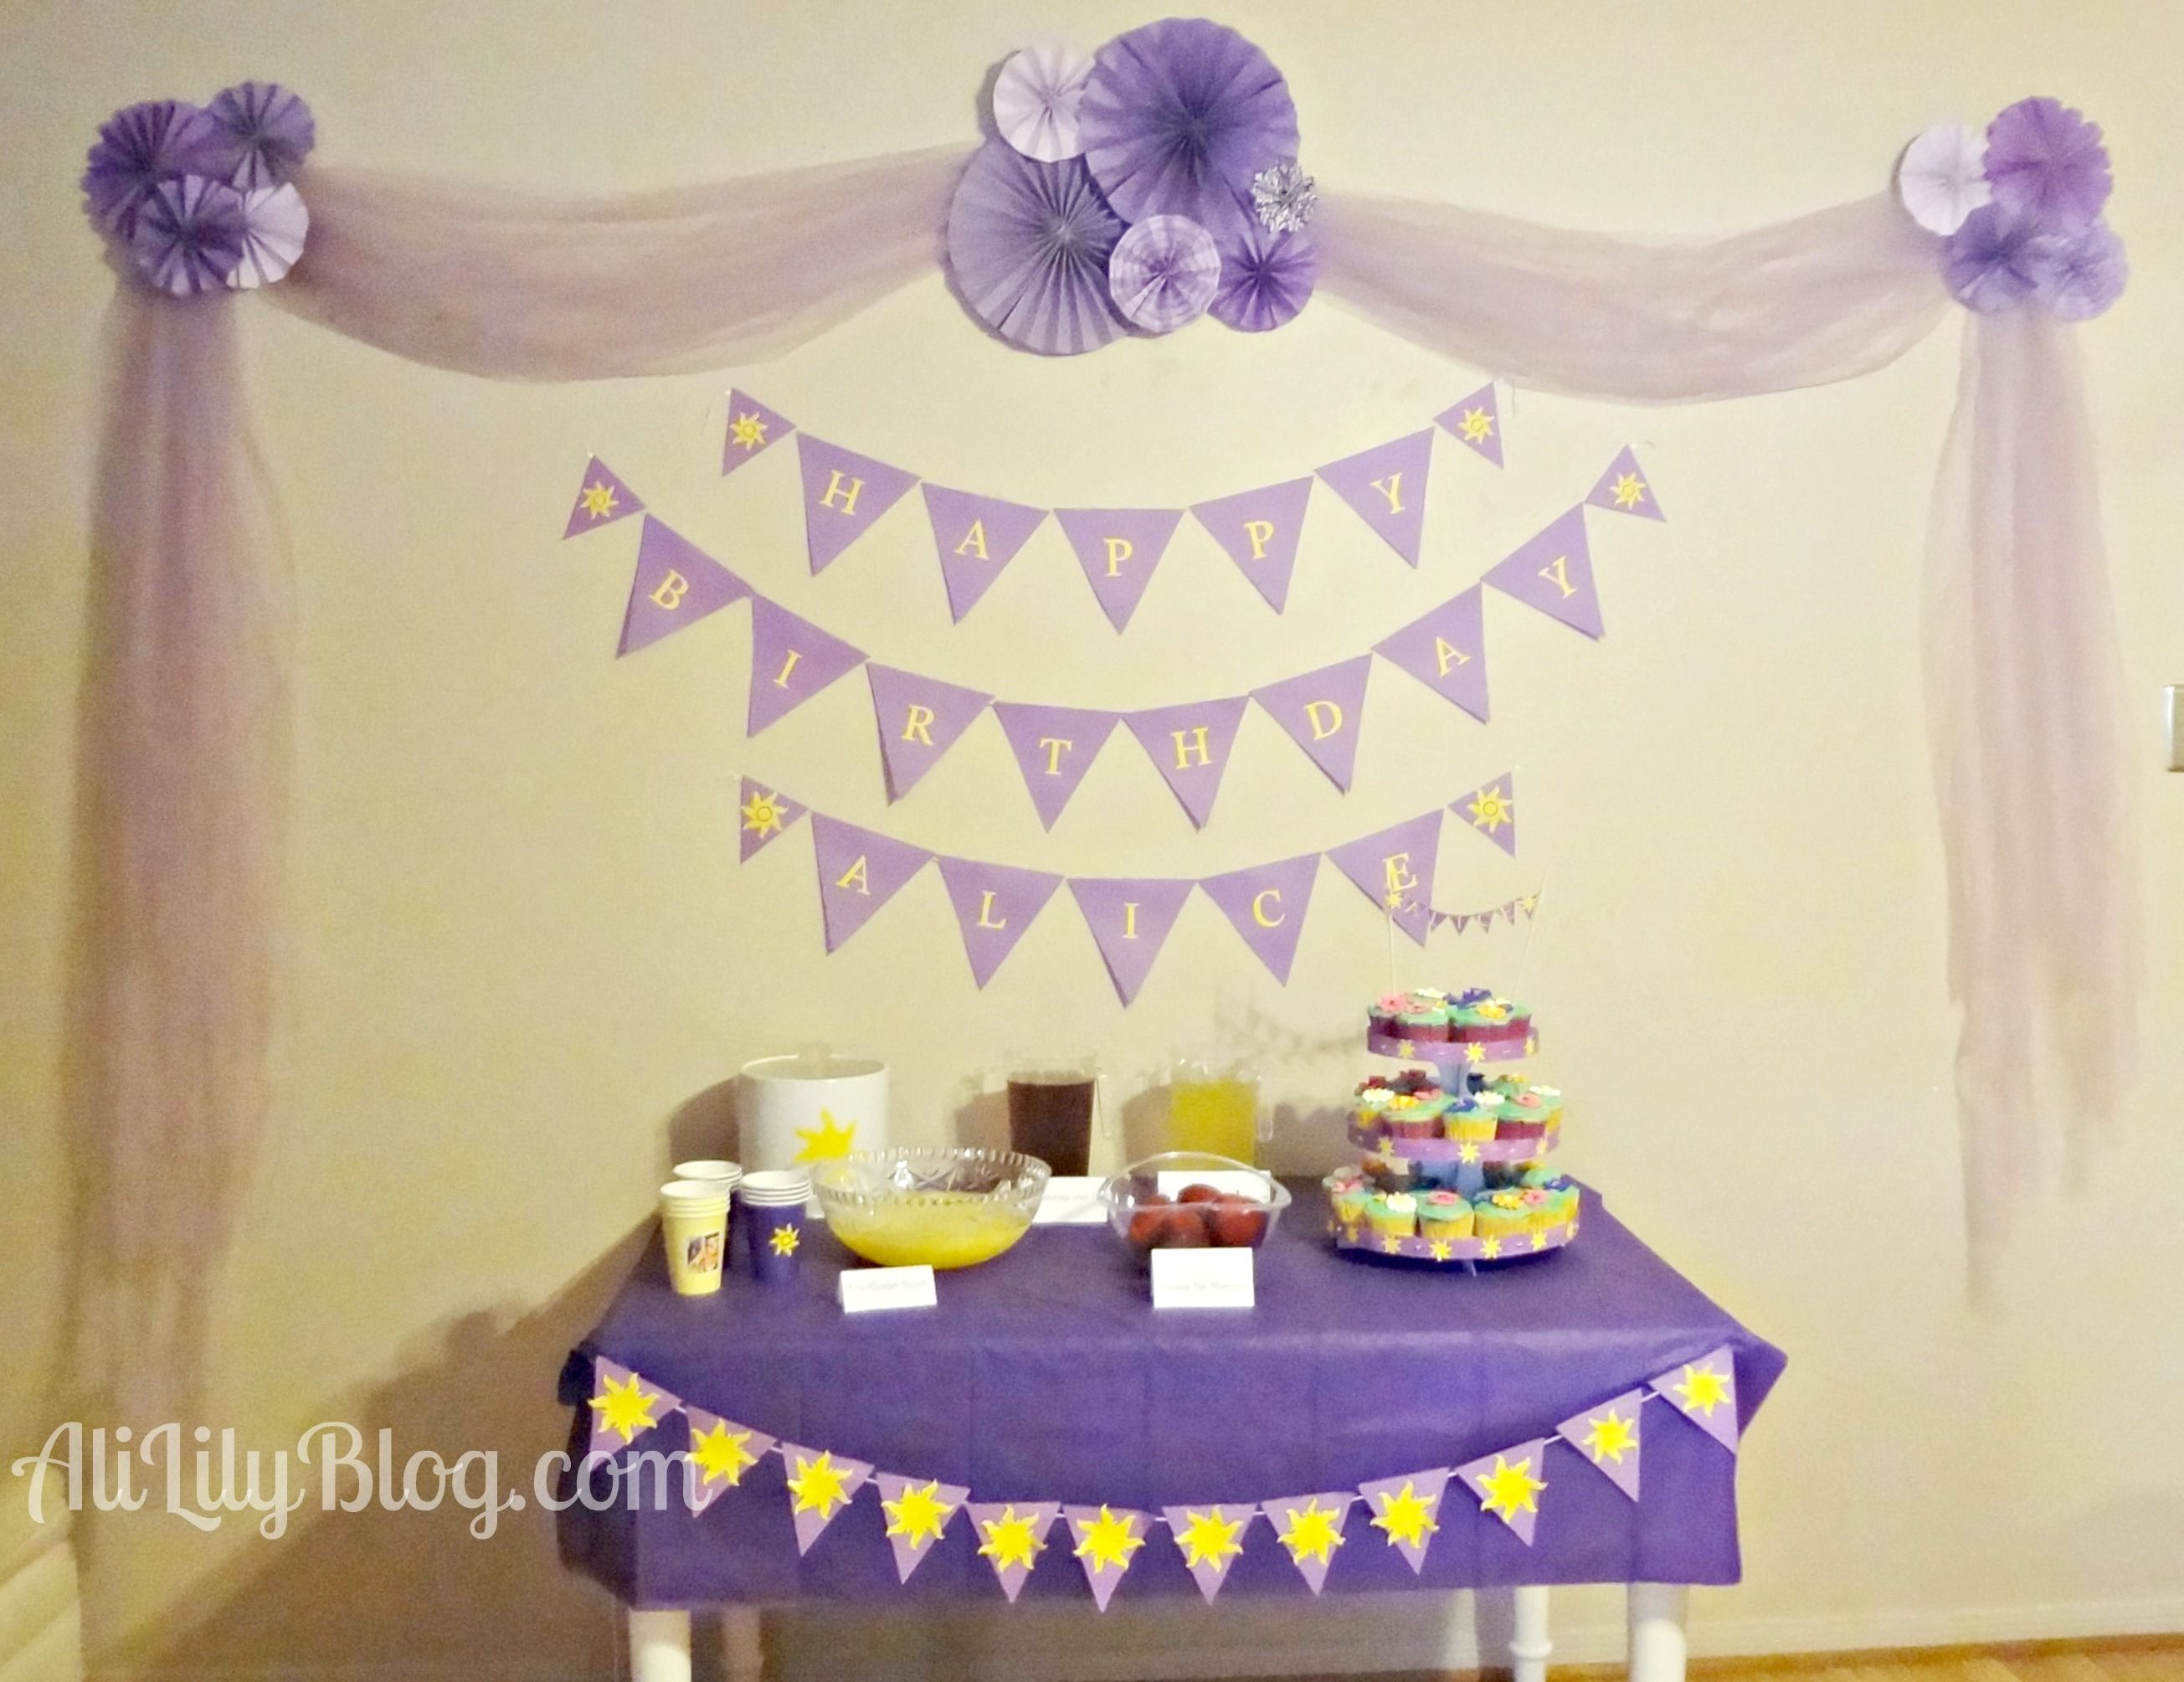 rapunzel-tangled-party-food.jpg (2609×2009) | Party Food ...